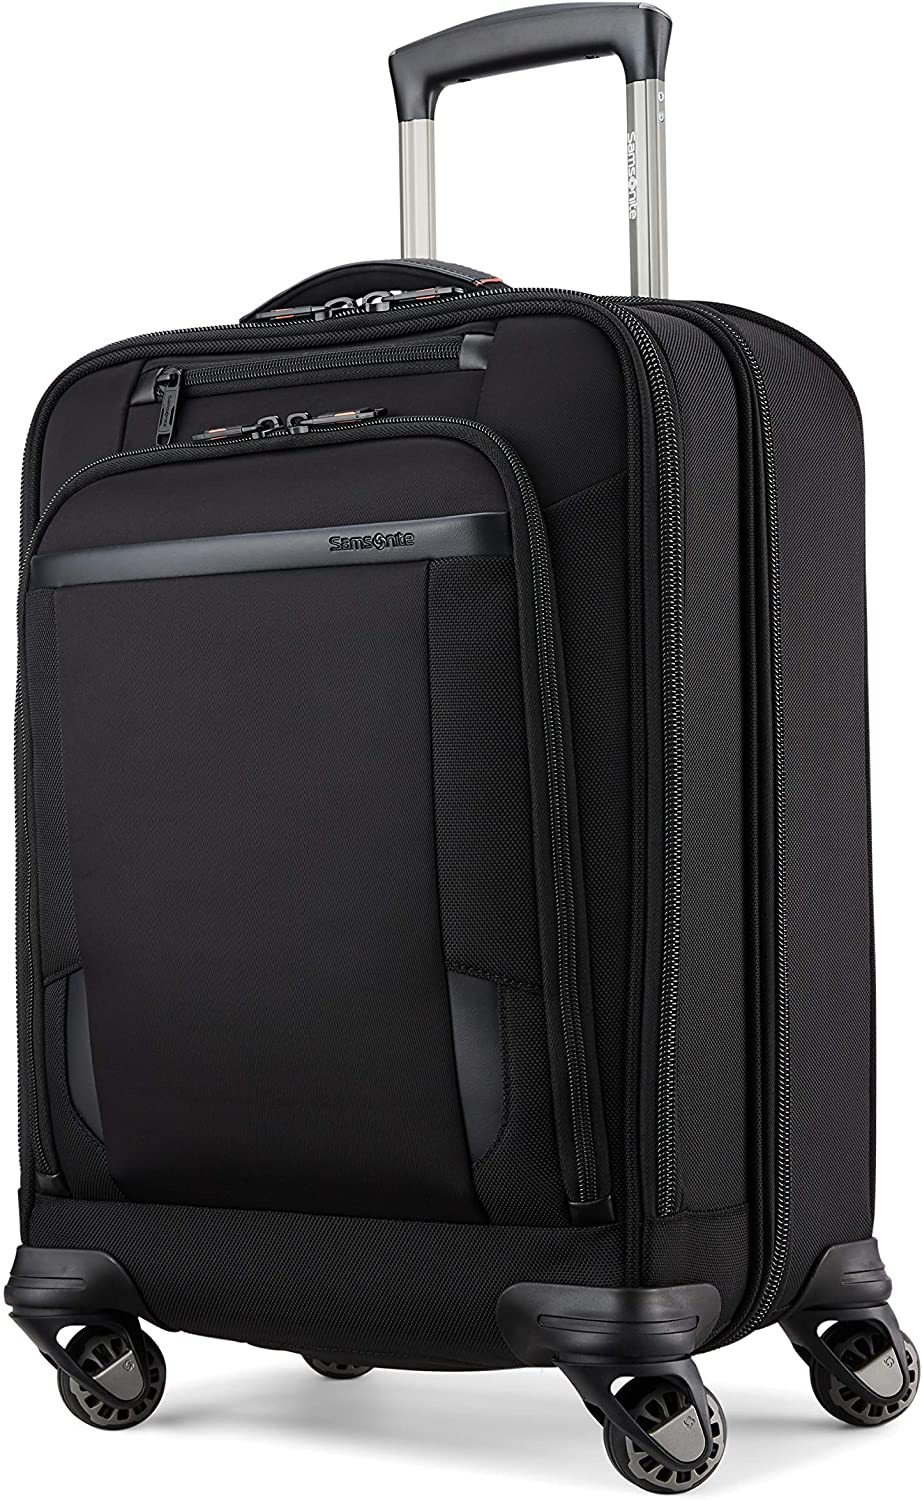 Samsonite Pro Vertical Spinner Mobile Office, Black, One Size